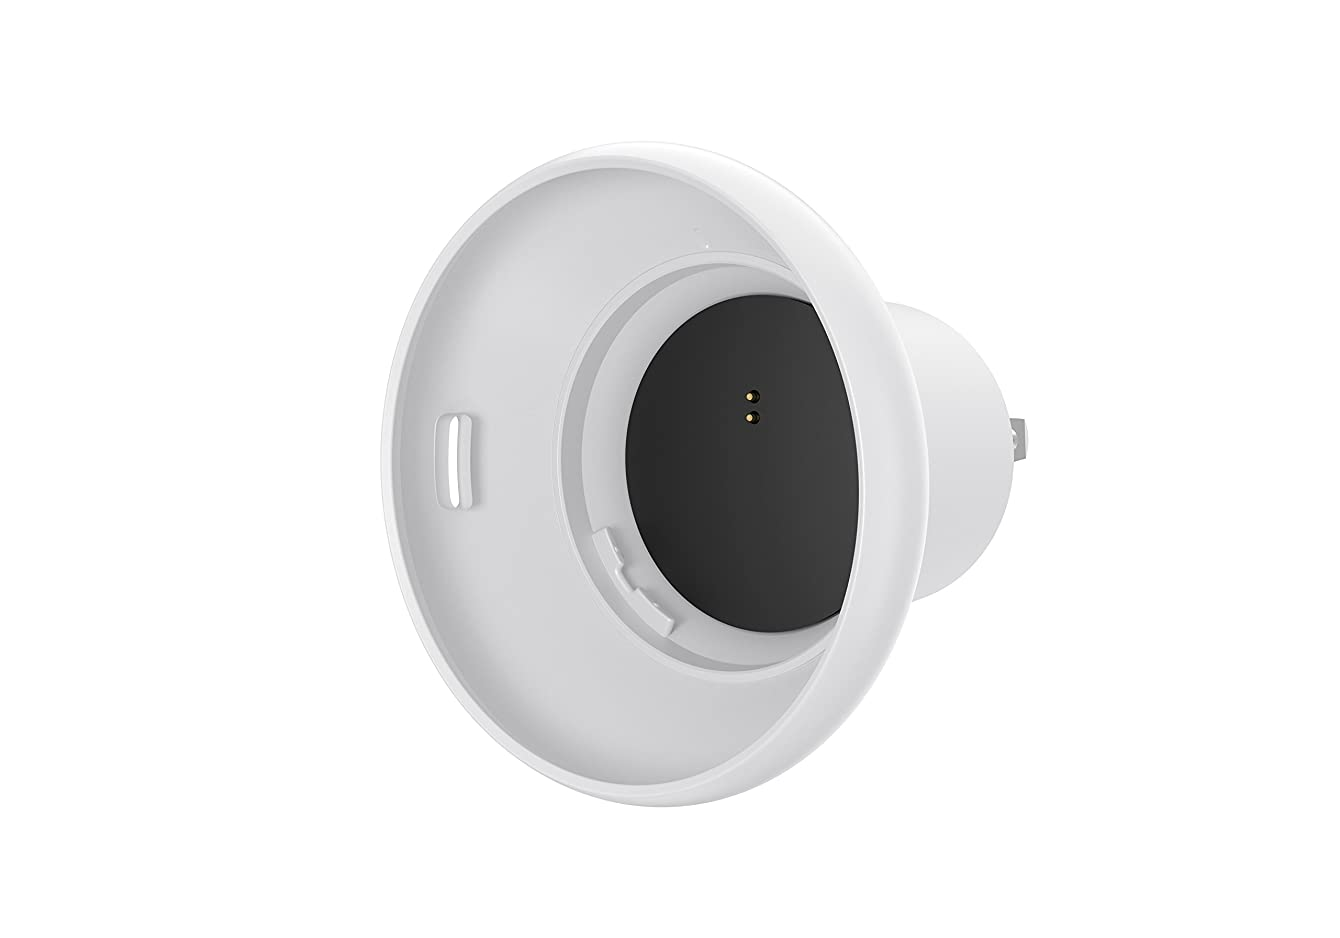 Logitech Circle 2 Plug Mount wireless accessory for Circle 2 Wired or Circle 2 100% Wire-Free Indoor/Outdoor Weatherproof Home Security Camera